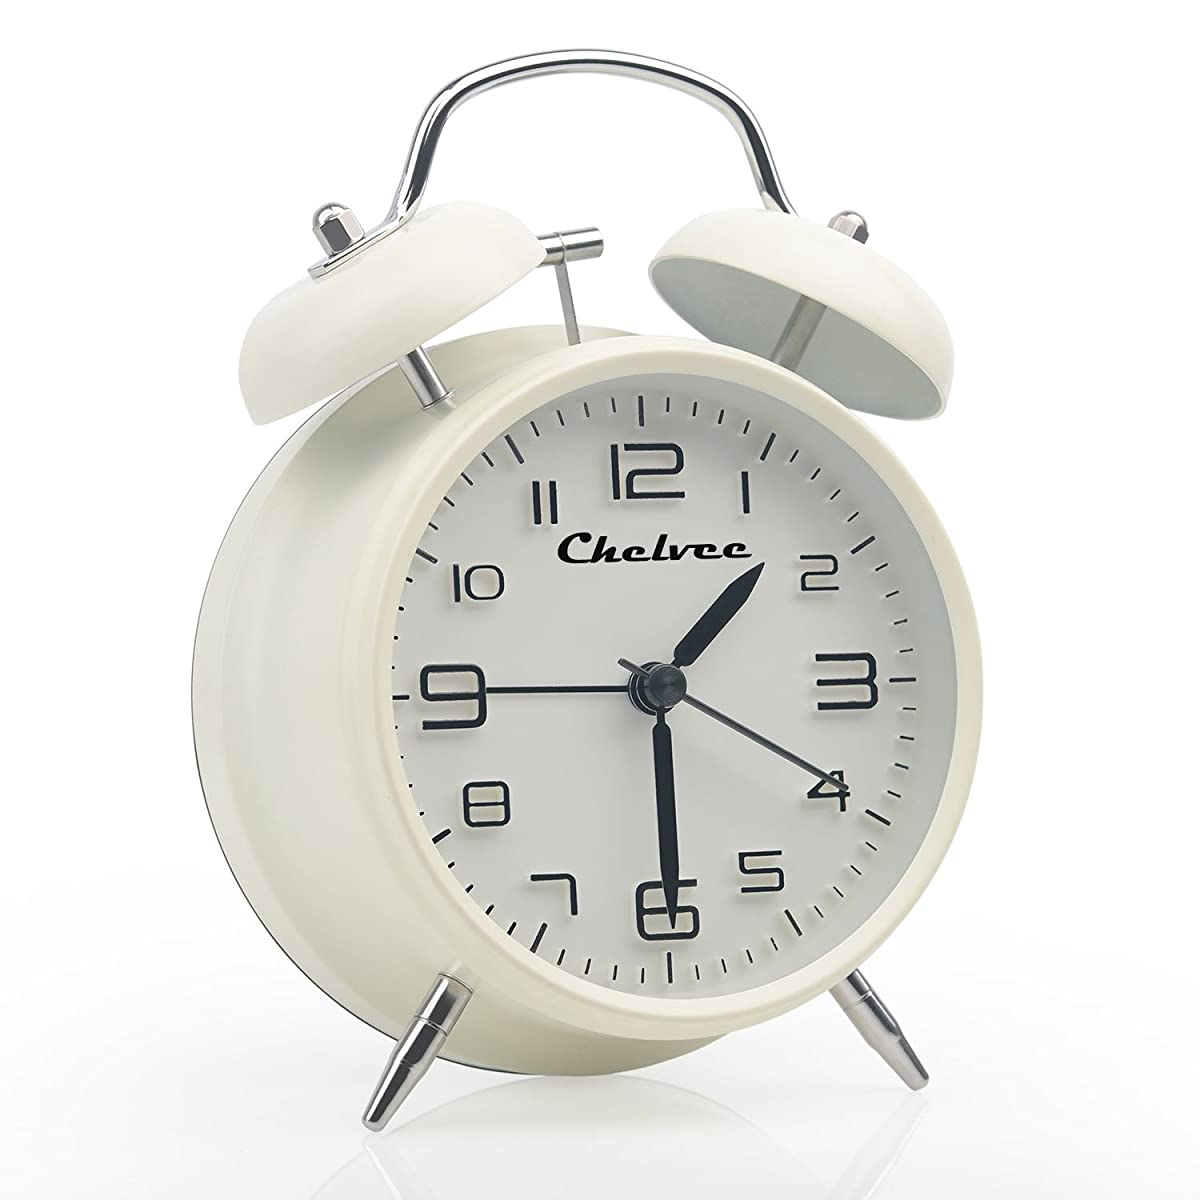 "Chelvee(TM) 4"" Antique Twin Bell Analog Quartz Alarm Clock with Nightlight, Silent Clock Mechanism, Non Ticking, Loud Alarm Bell, Battery Operated. (White)"